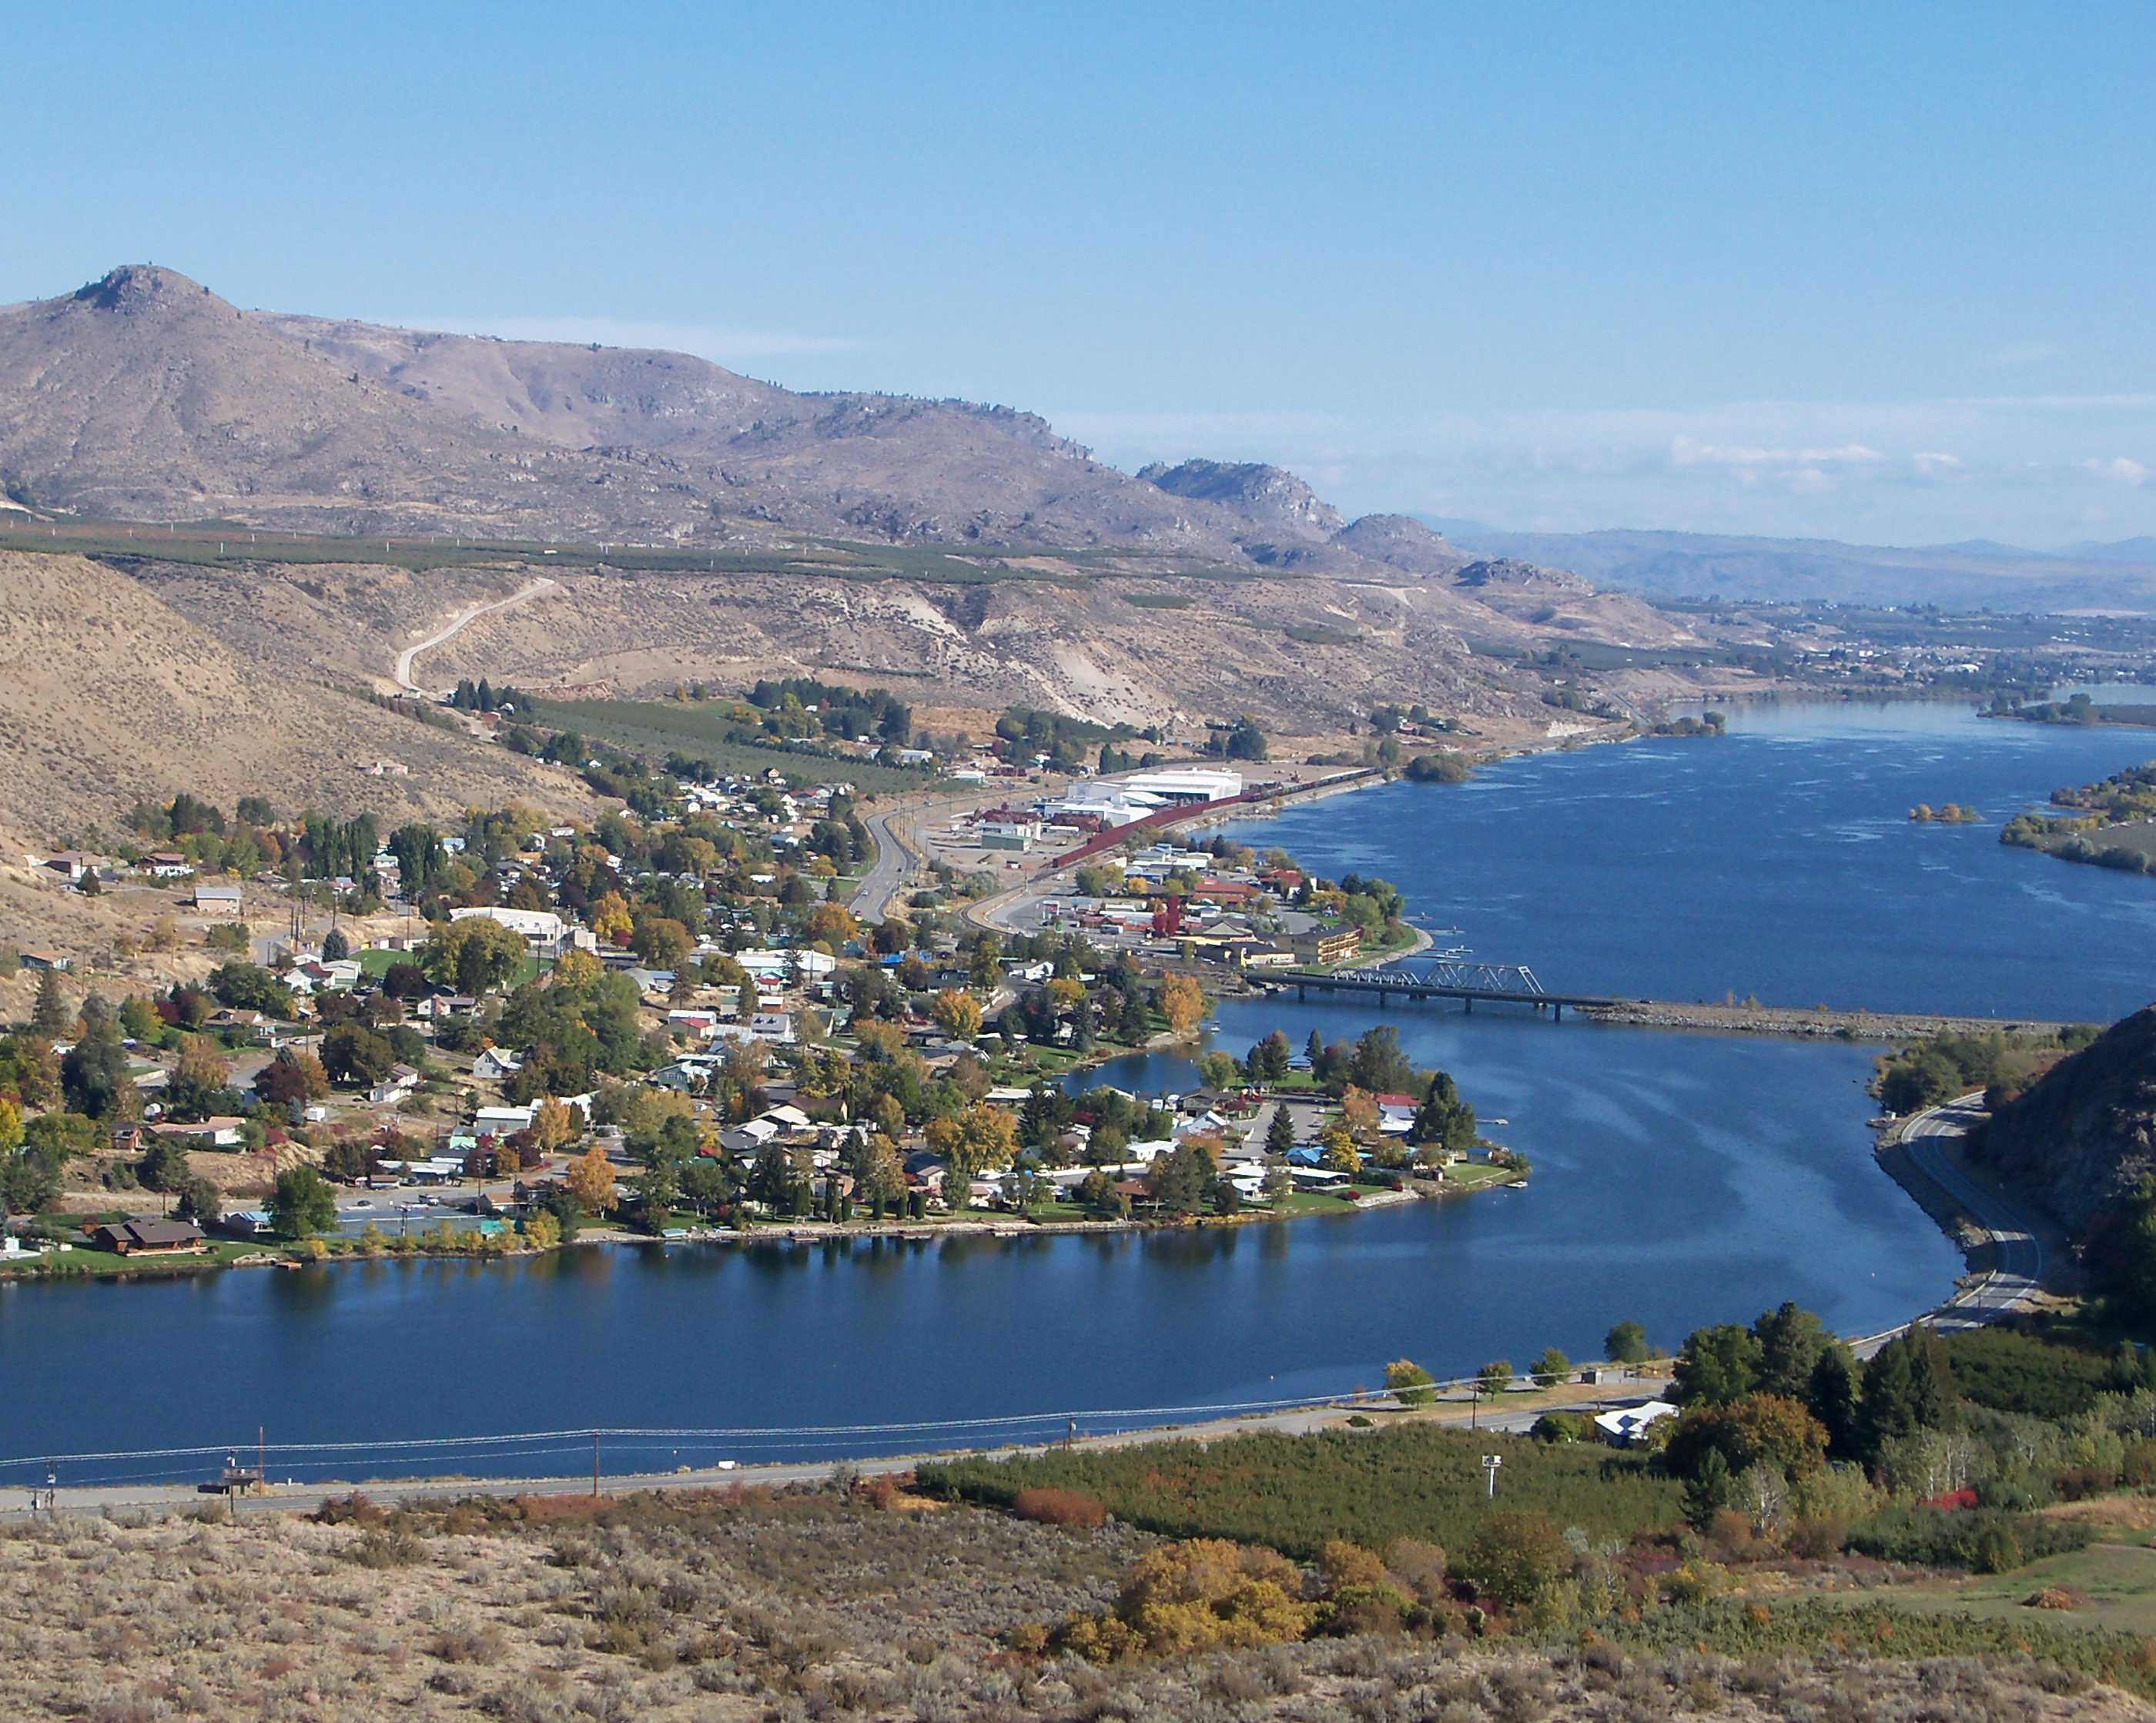 New_Pateros_from_above_8x10.jpg